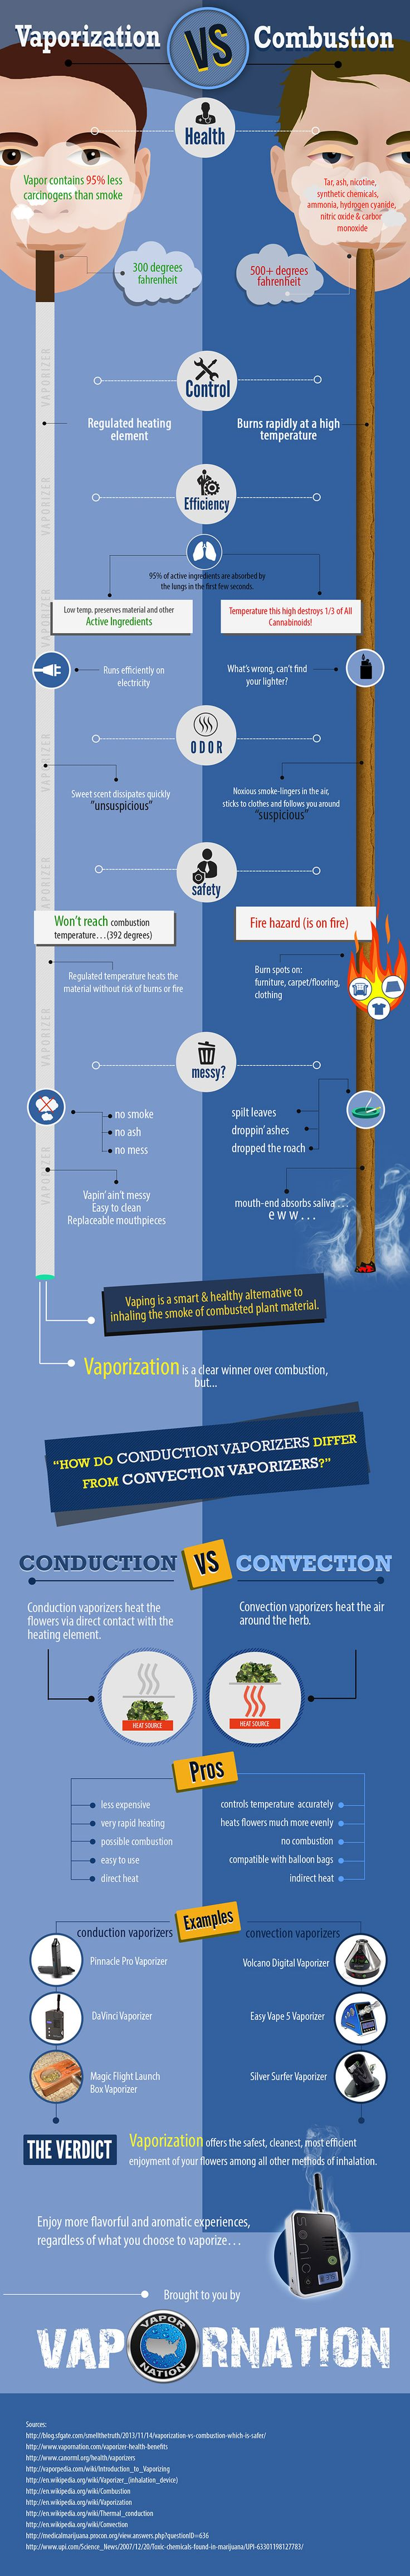 Vaporizer Health Benefits | Smoking vs Vaporizing | VaporNation http://thecbdway.com